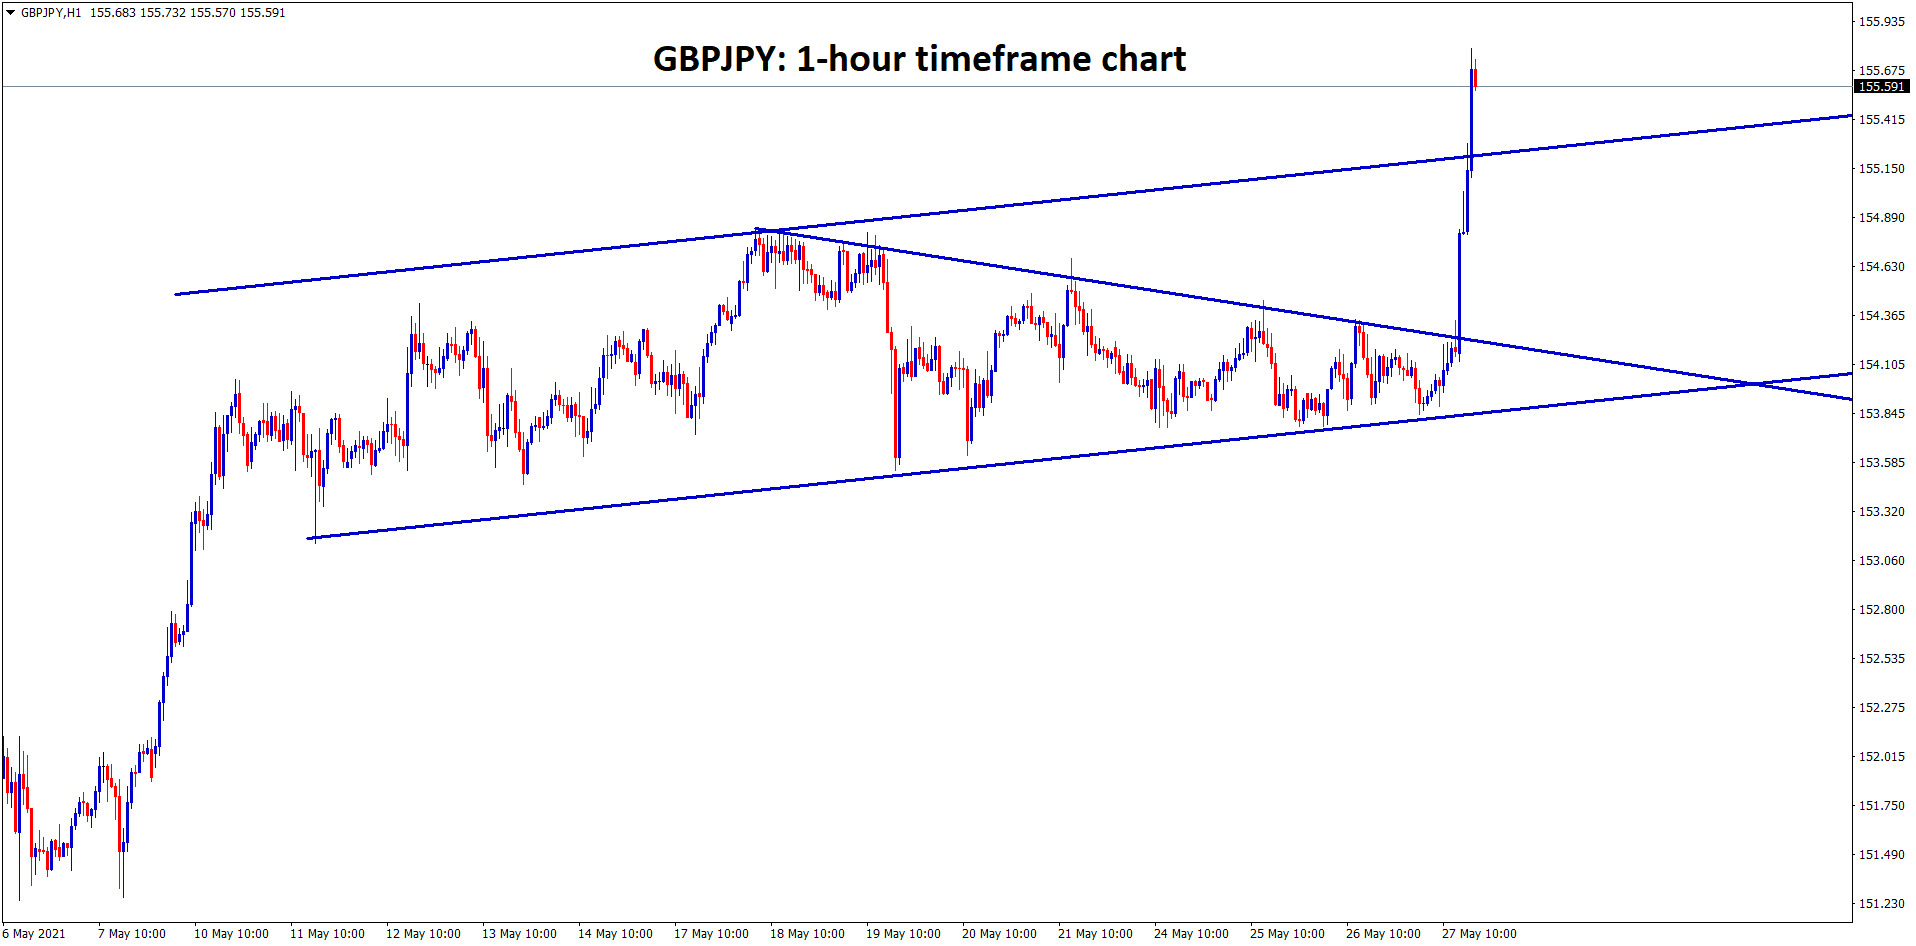 GBPJPY has broken the top of the falling wedge pattern and also broken the top of the trend line